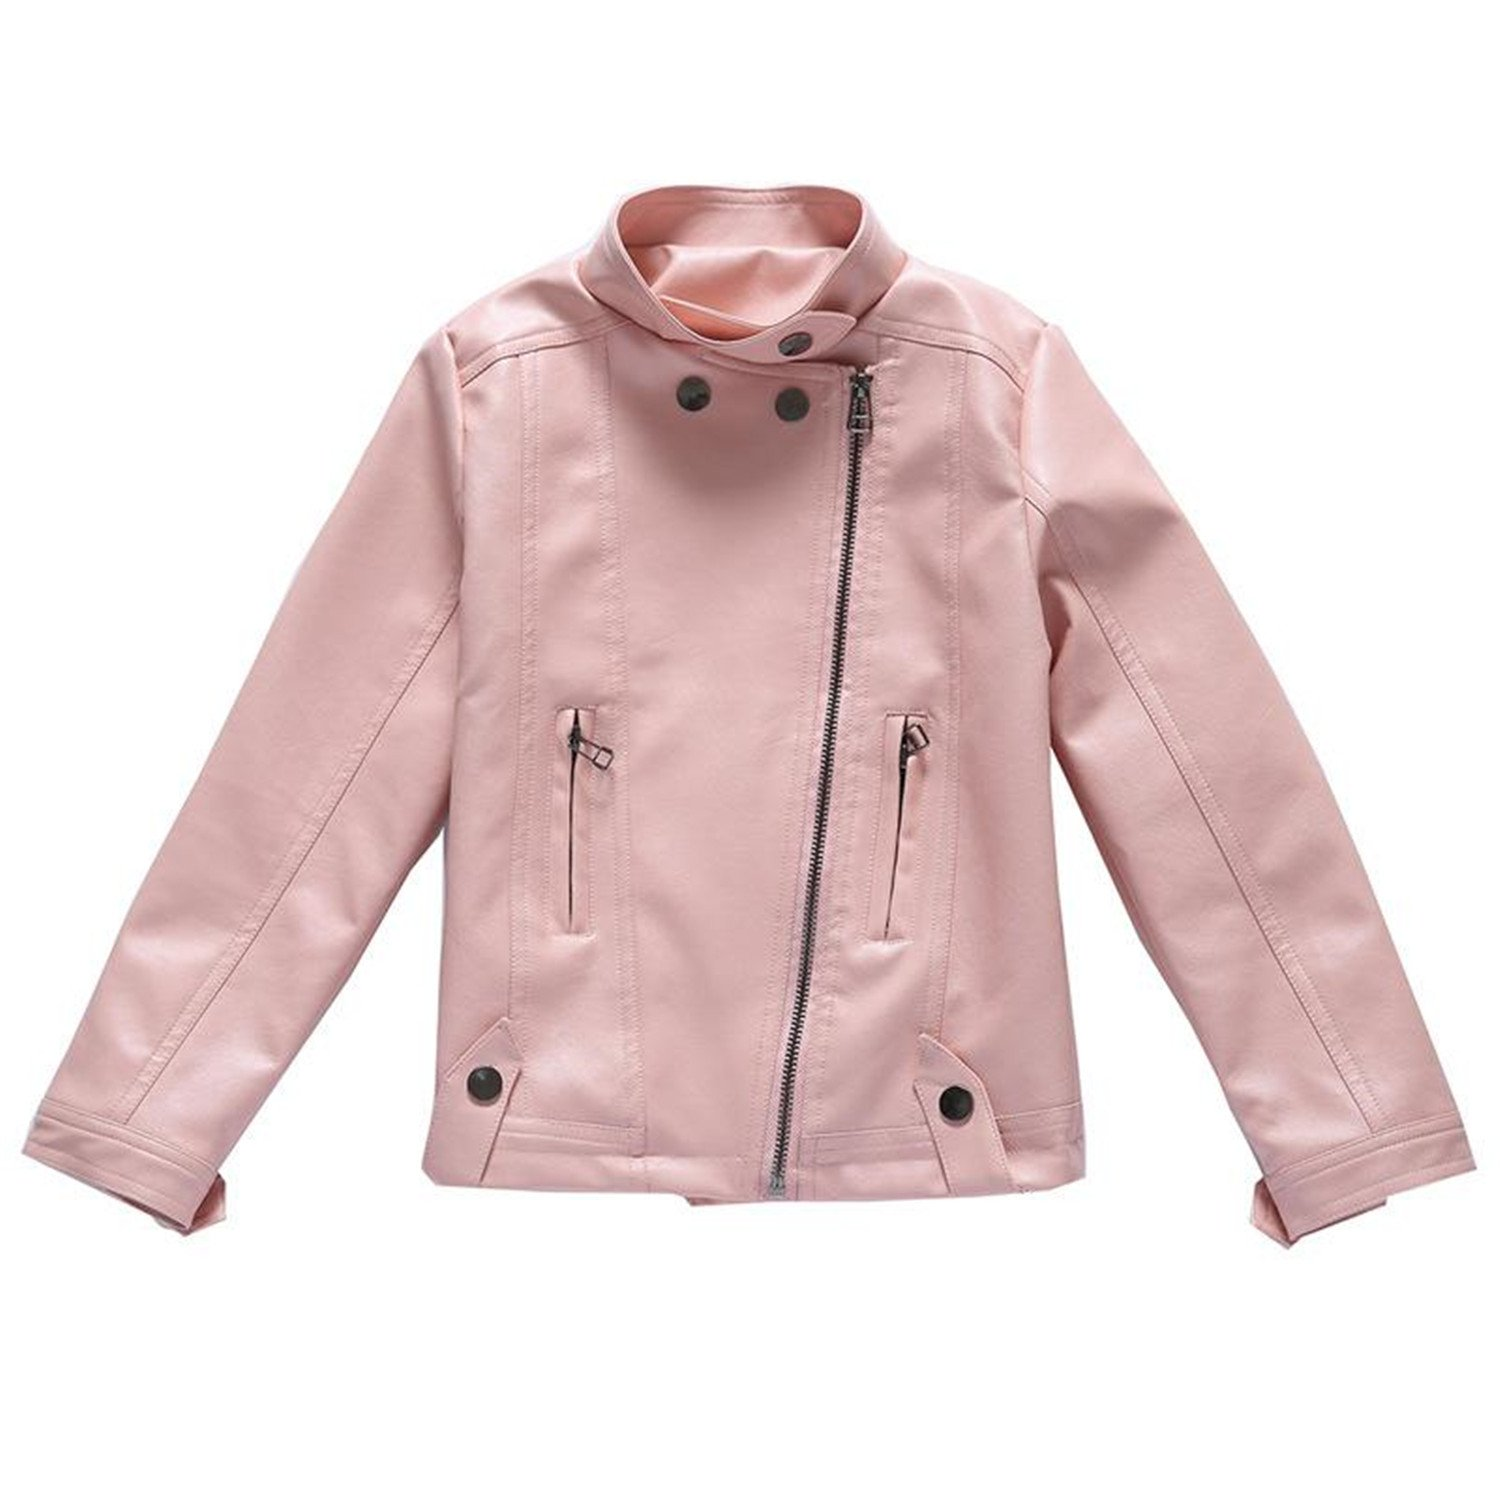 Daerwen Fashion PU Leather Jackets for Girls New New Autumn Spring Kids Coat 4 5 6 7 8 9 10 11 12 13 14 Years Childrens Outerwear Pink 10T fashion